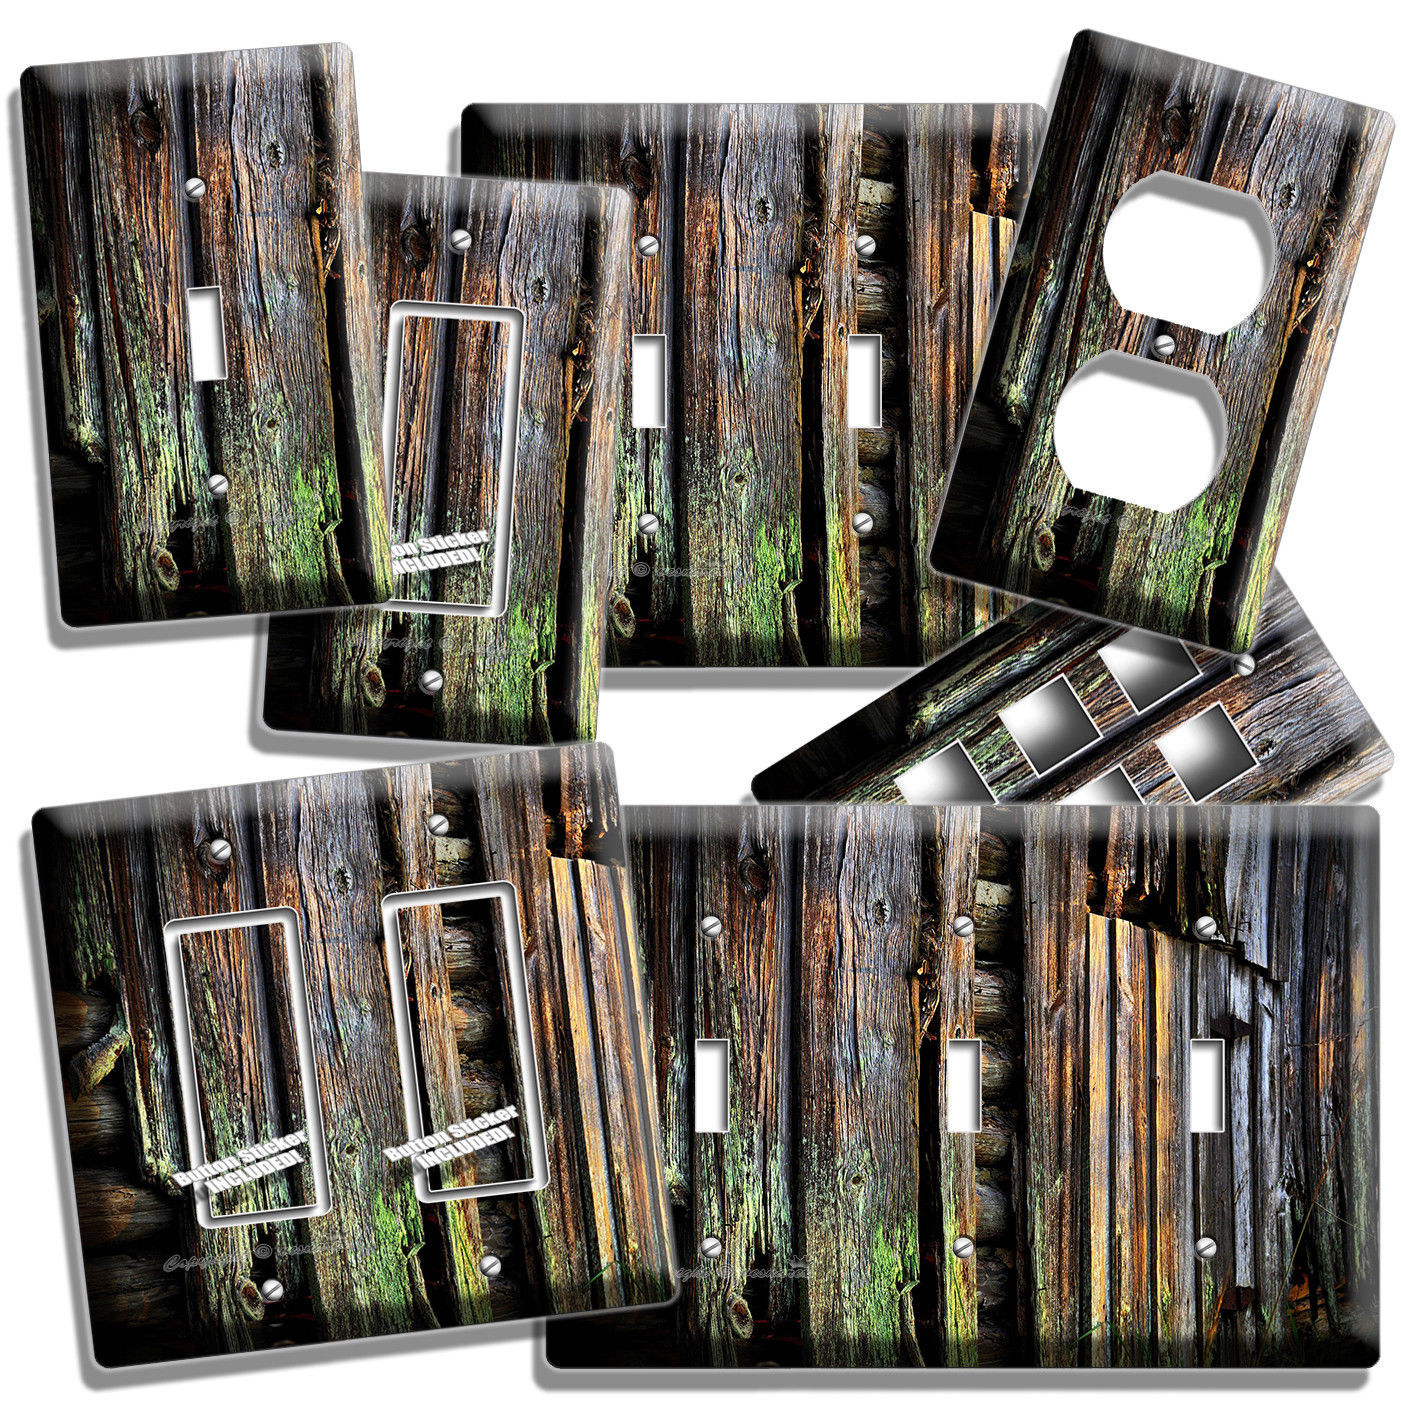 RUSTIC OLD WORN OUT MOSSY OAK WOOD PLANKS LIGHT SWITCH WALL OUTLET PLATES DECOR - $9.99 - $21.99